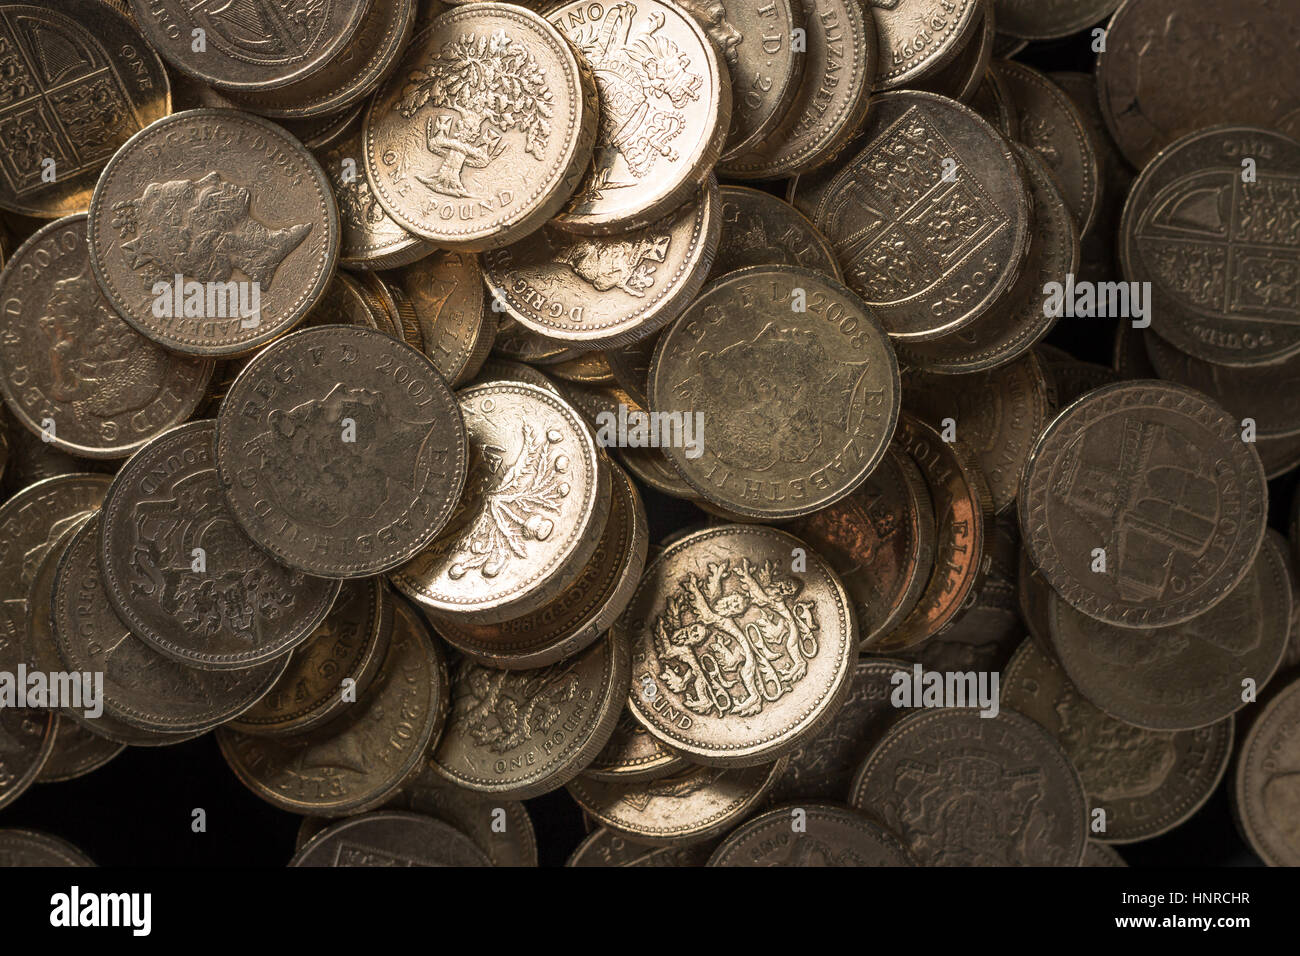 Stacks of pound coins arranged in piles. - Stock Image